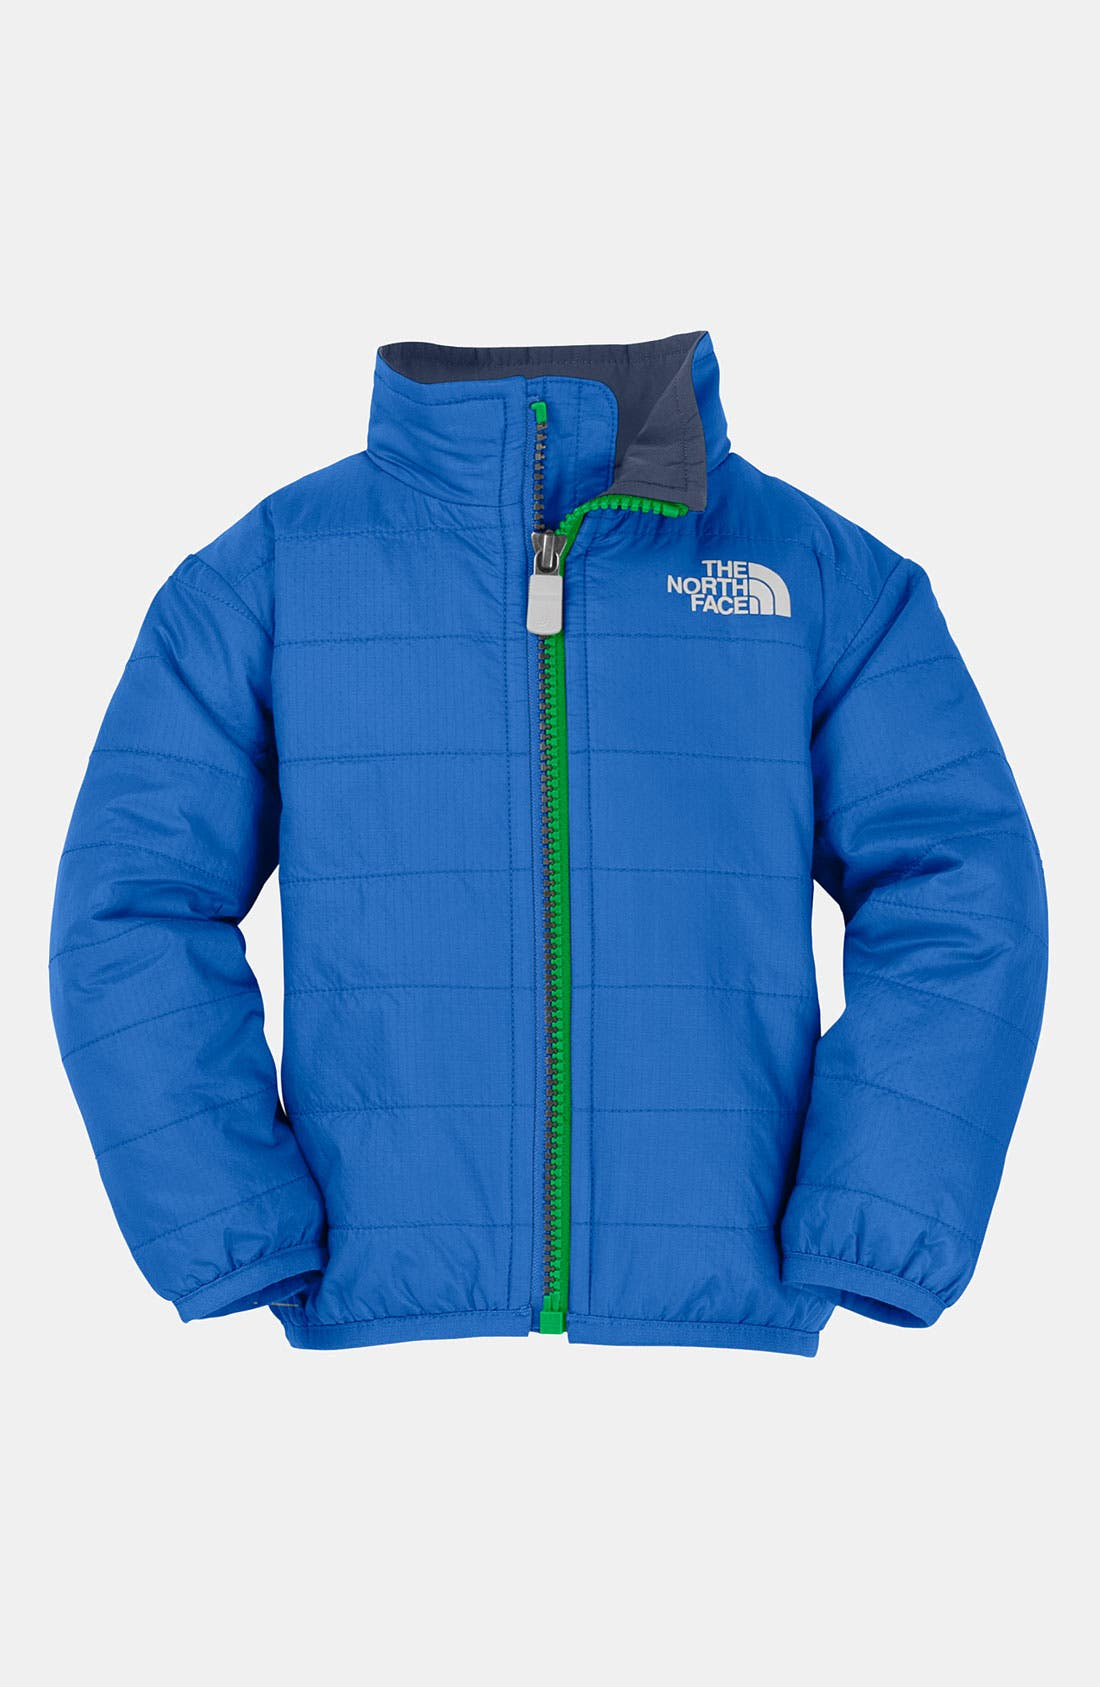 Main Image - The North Face 'Blaze' Jacket (Baby)